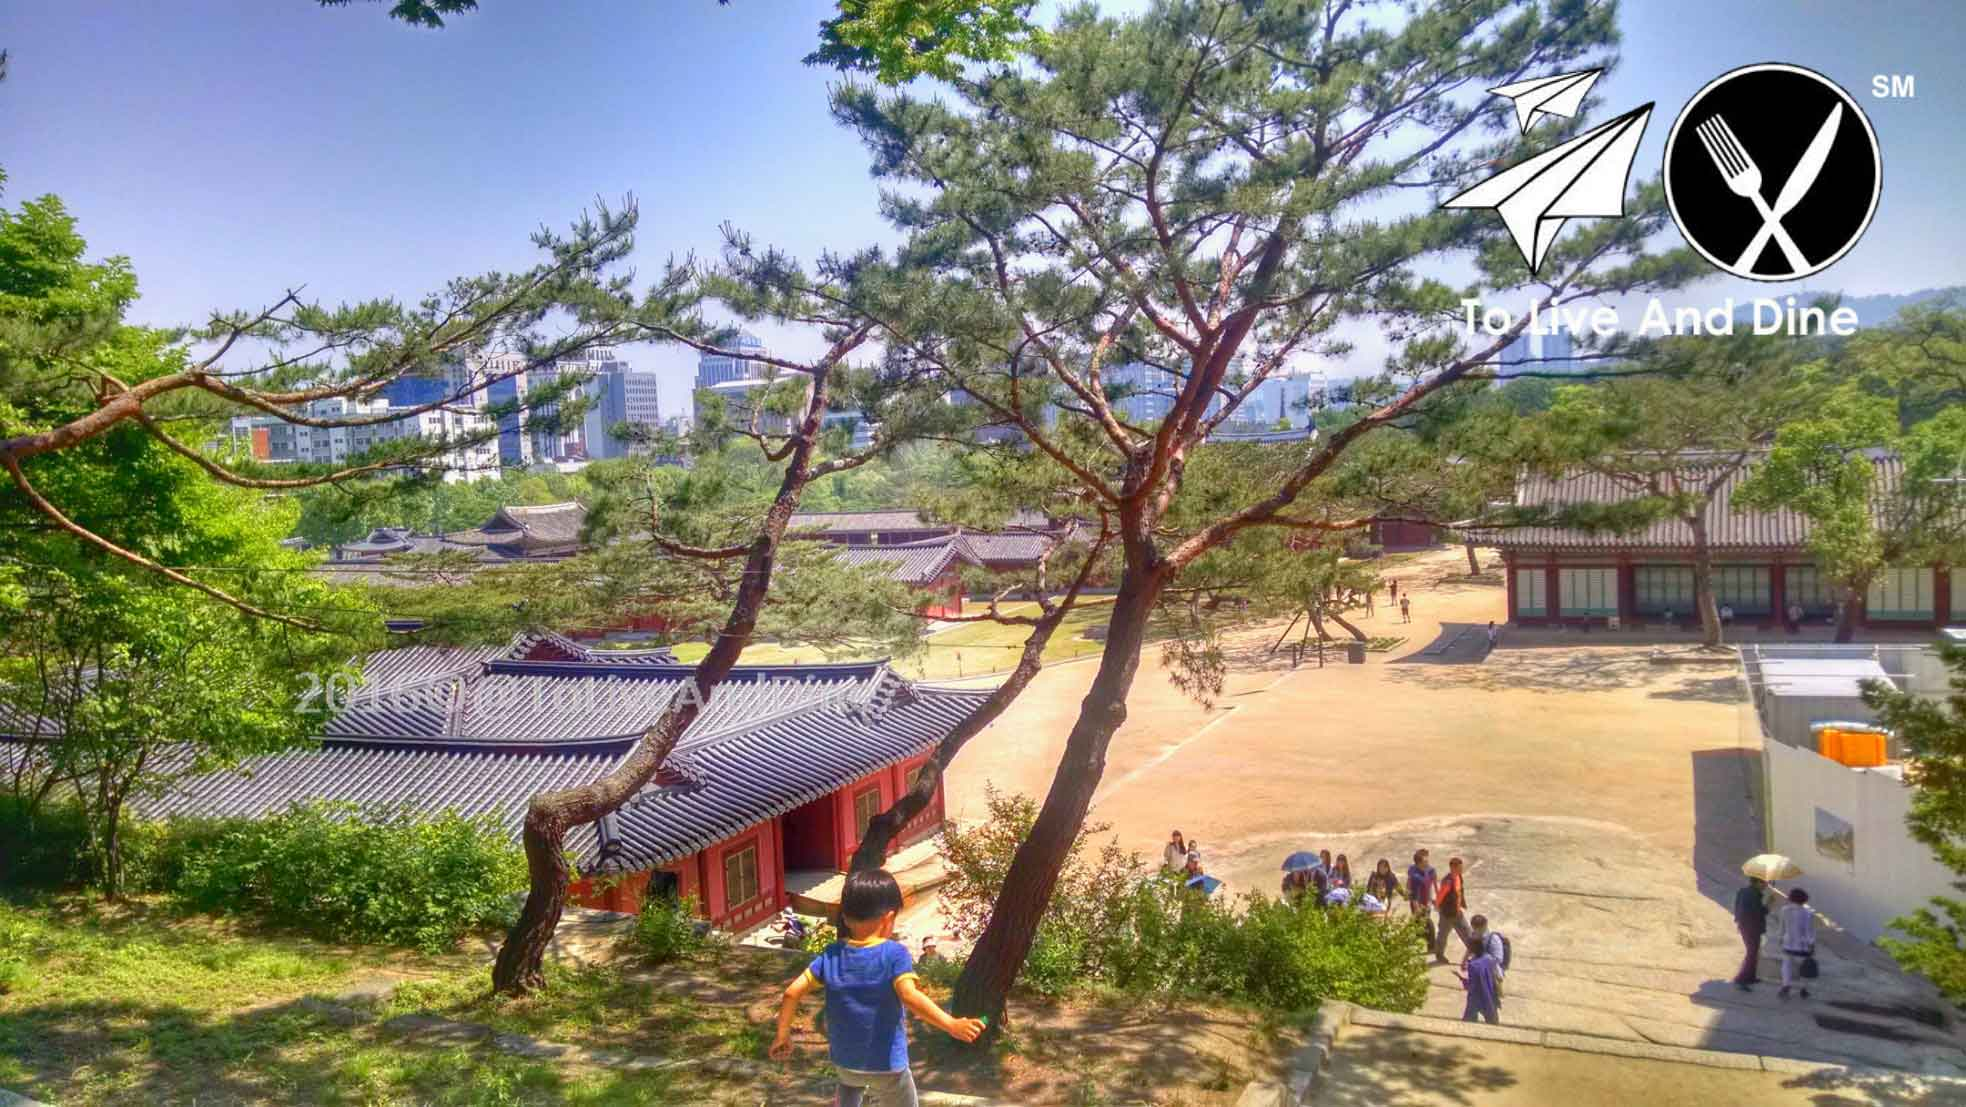 The view of Changgyeonggung